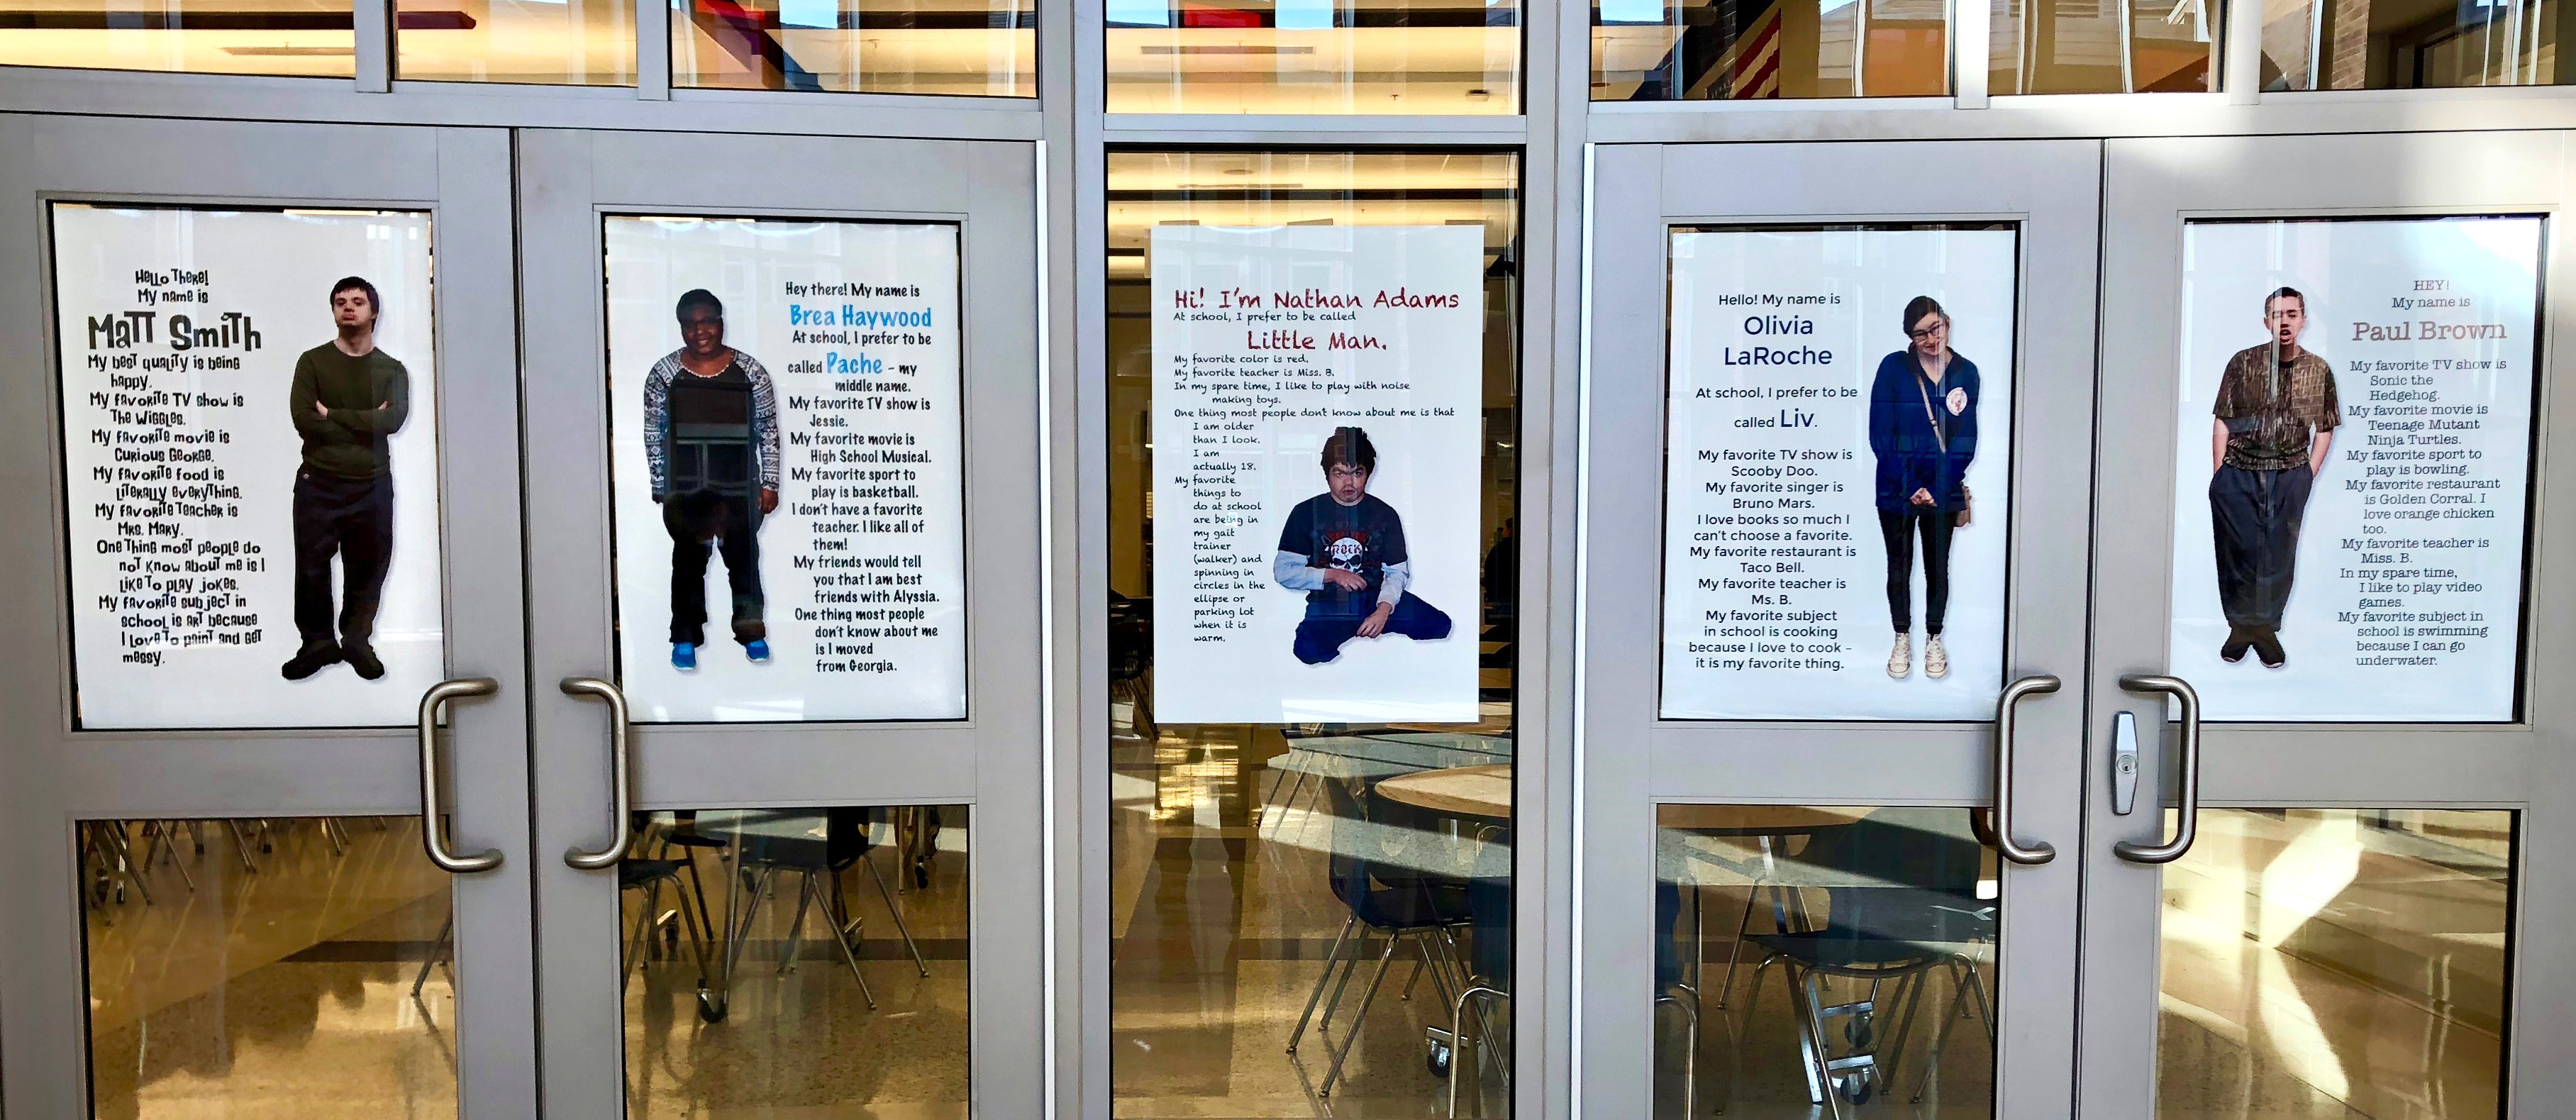 The doors to the PHS cafeteria were adorned with these posters introducing members of the LIfe Skills class to their fellow classmates.